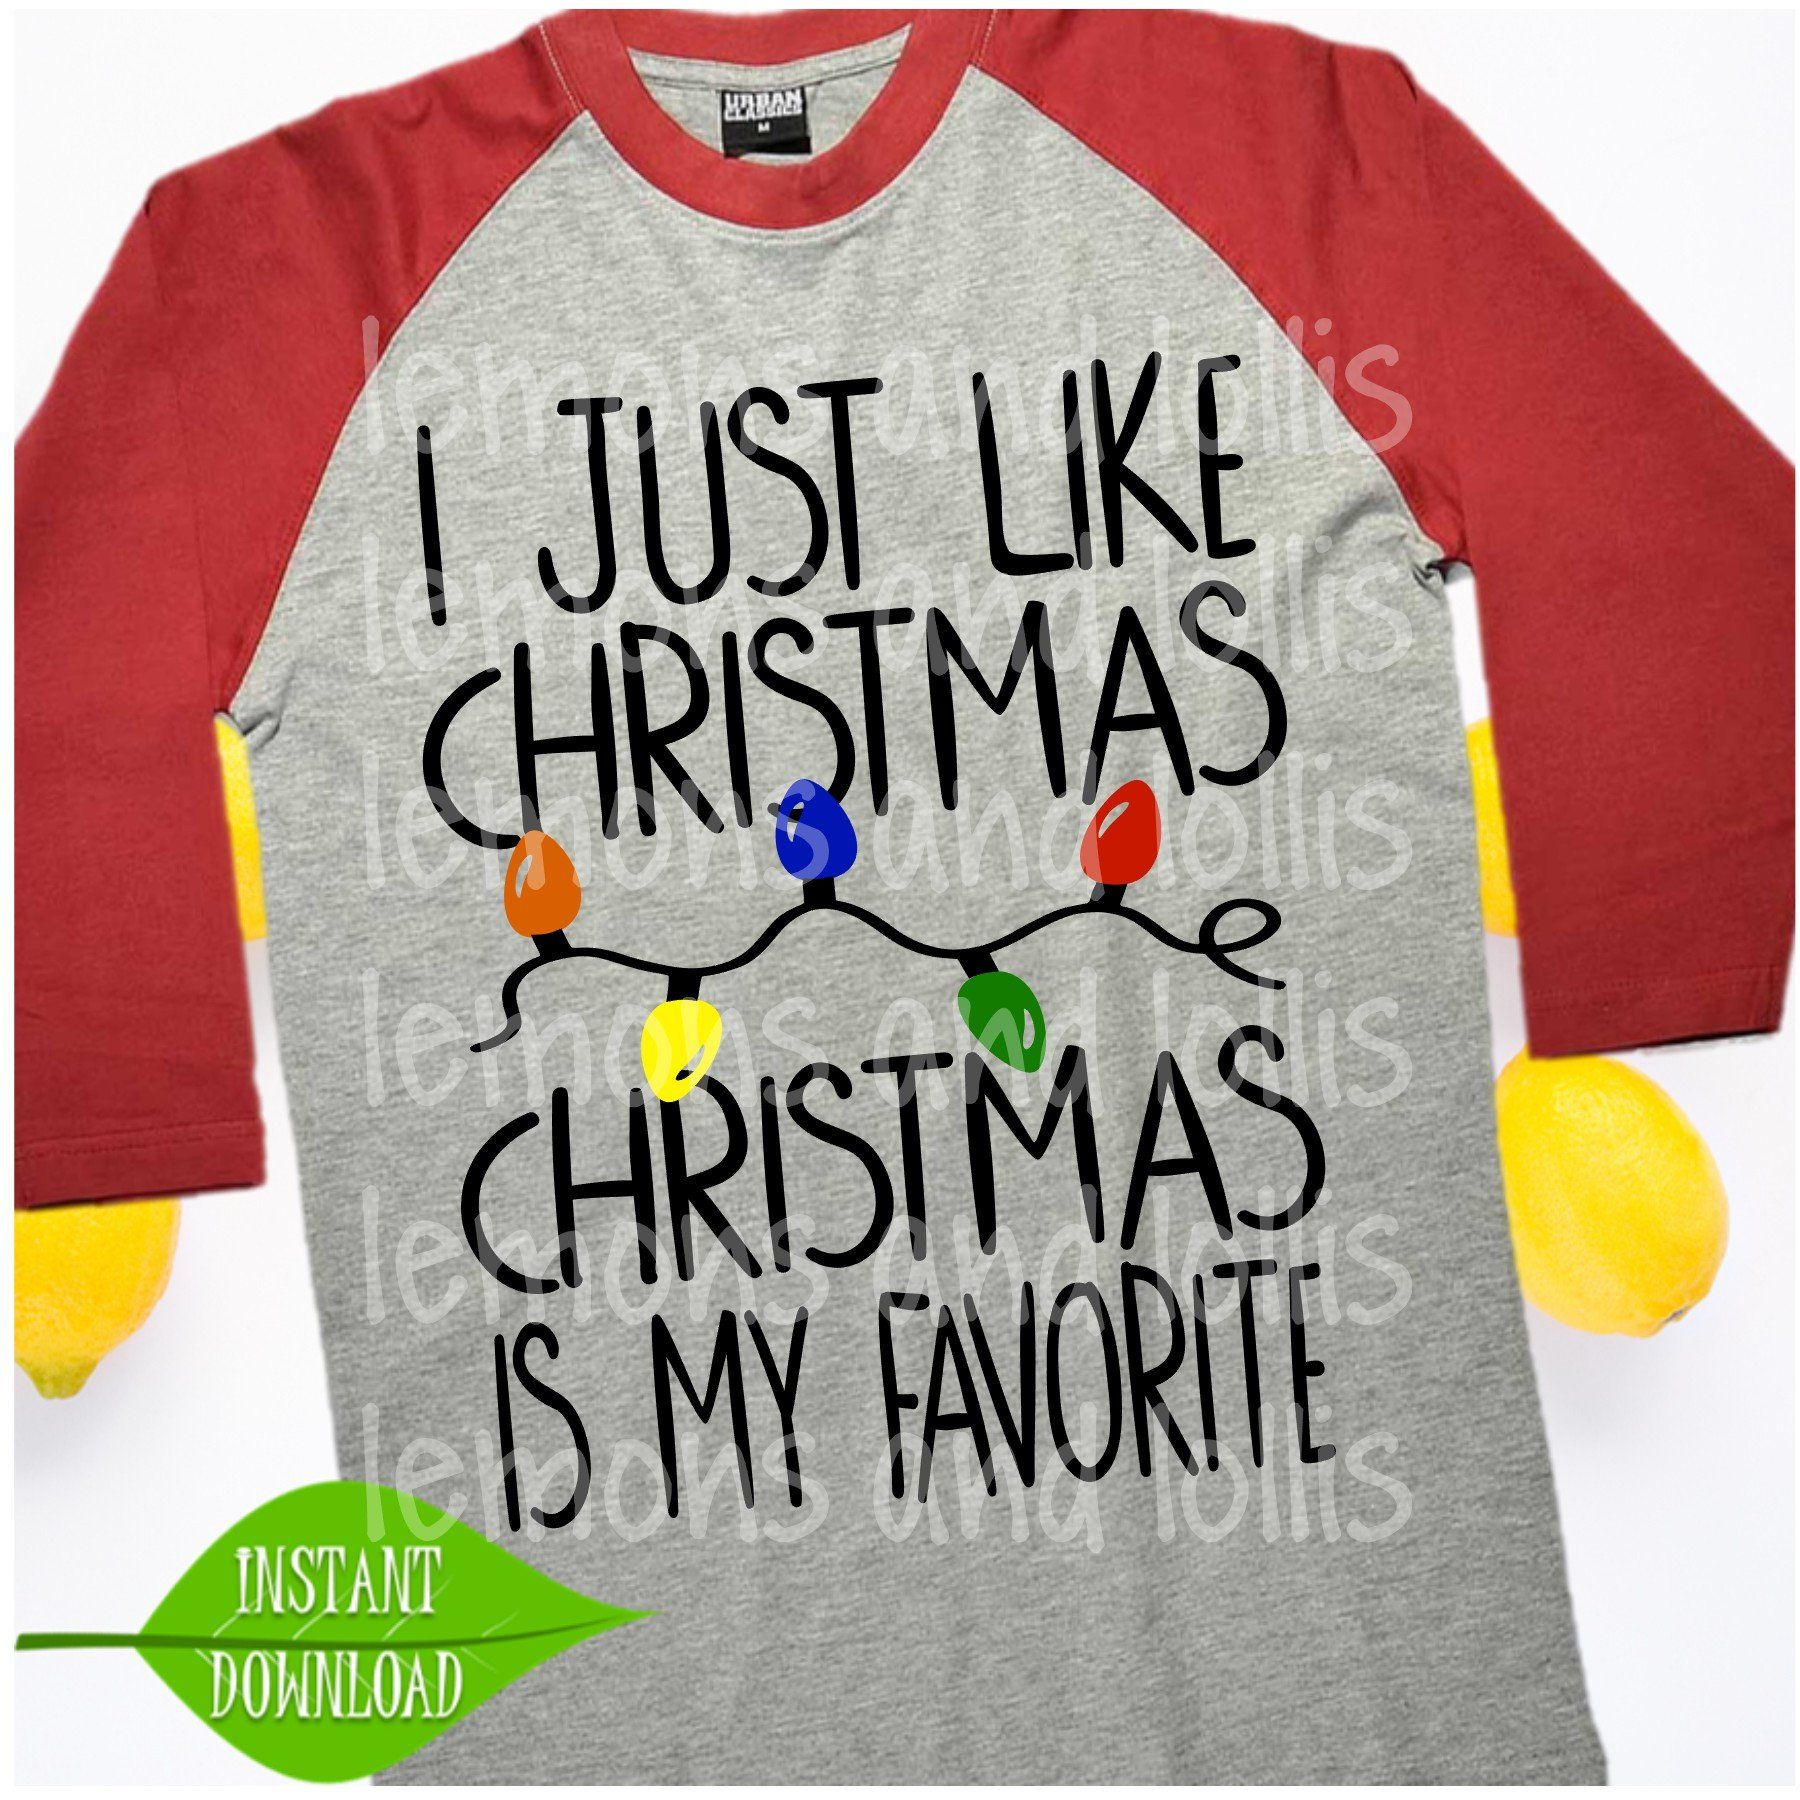 I just like Christmas Christmas is my FAVORITE svg, funny